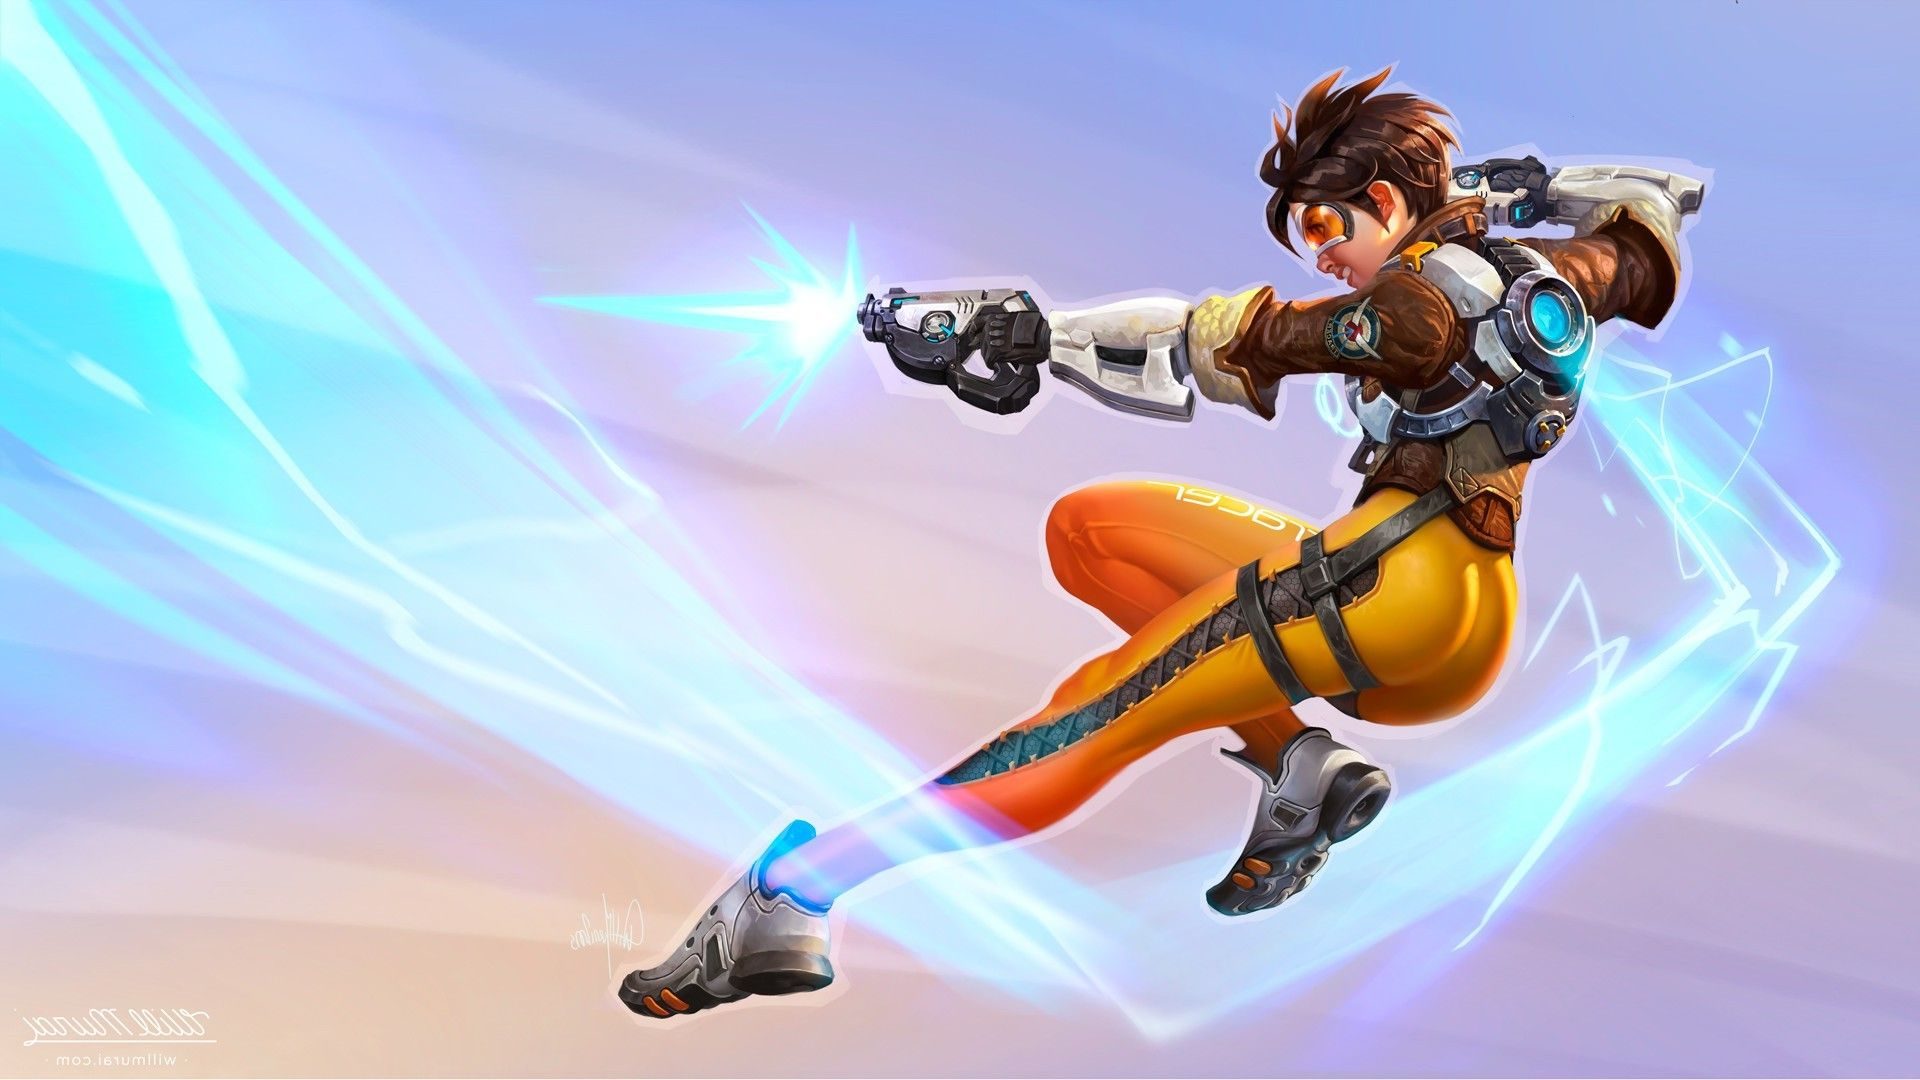 Overwatch Tracer Wallpaper For Iphone Sdeerwallpaper